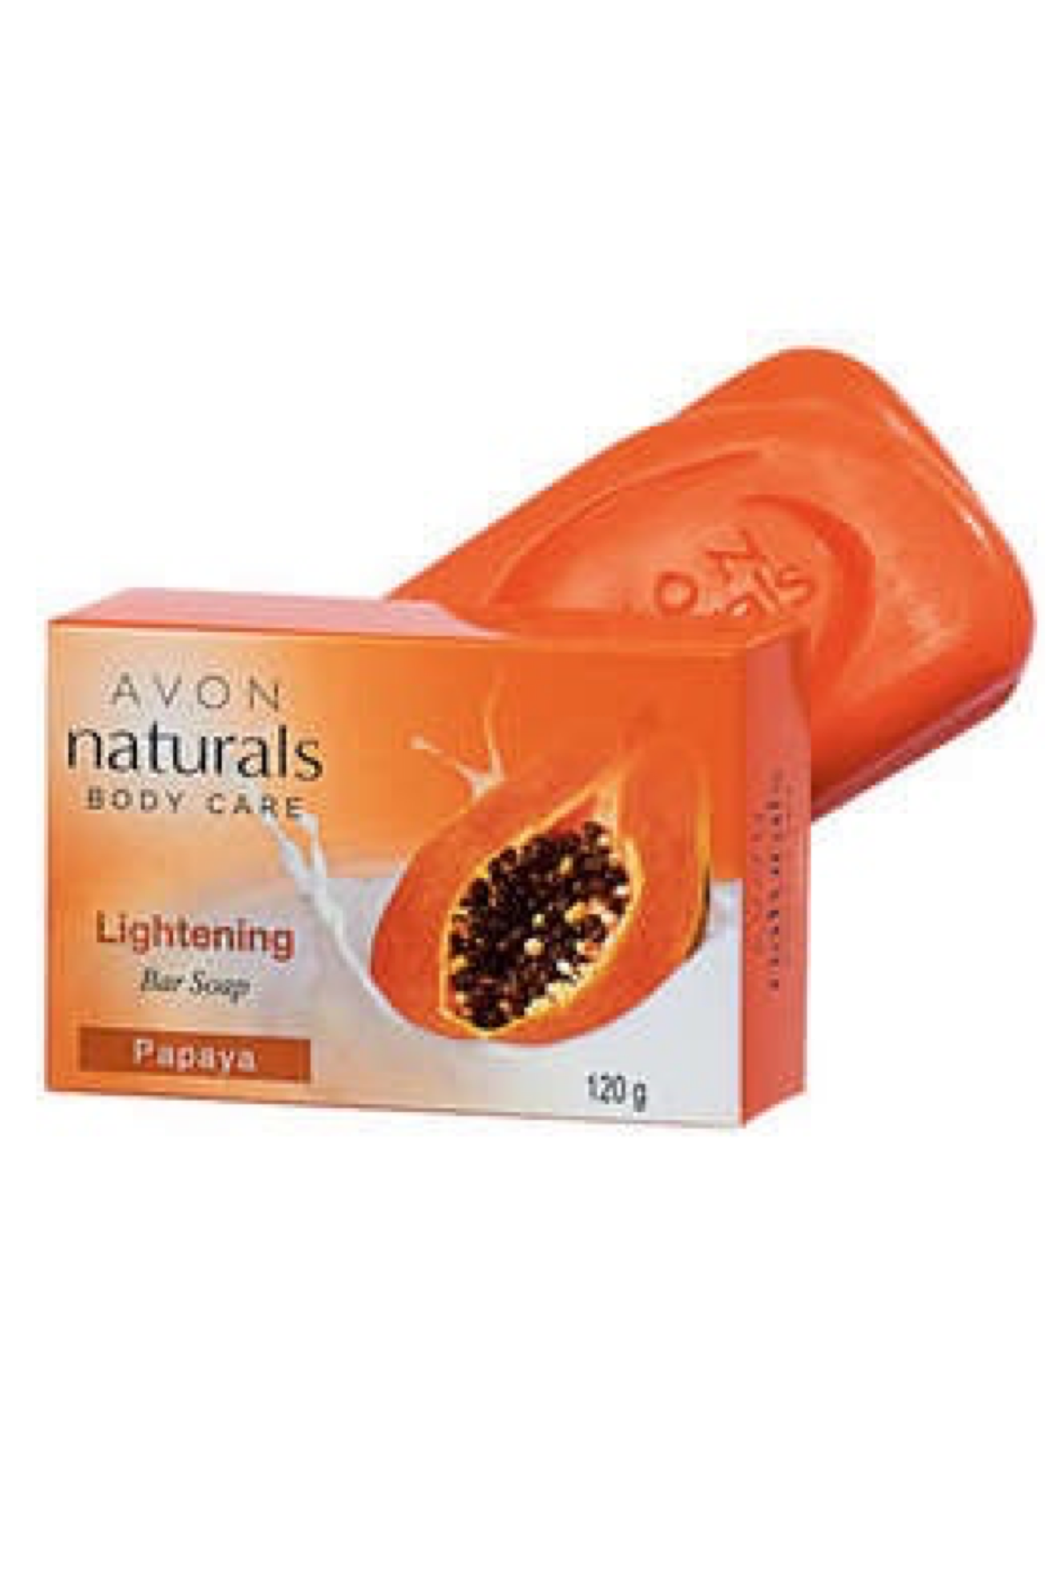 Naturals Lightening Bar Soap Papaya 120g